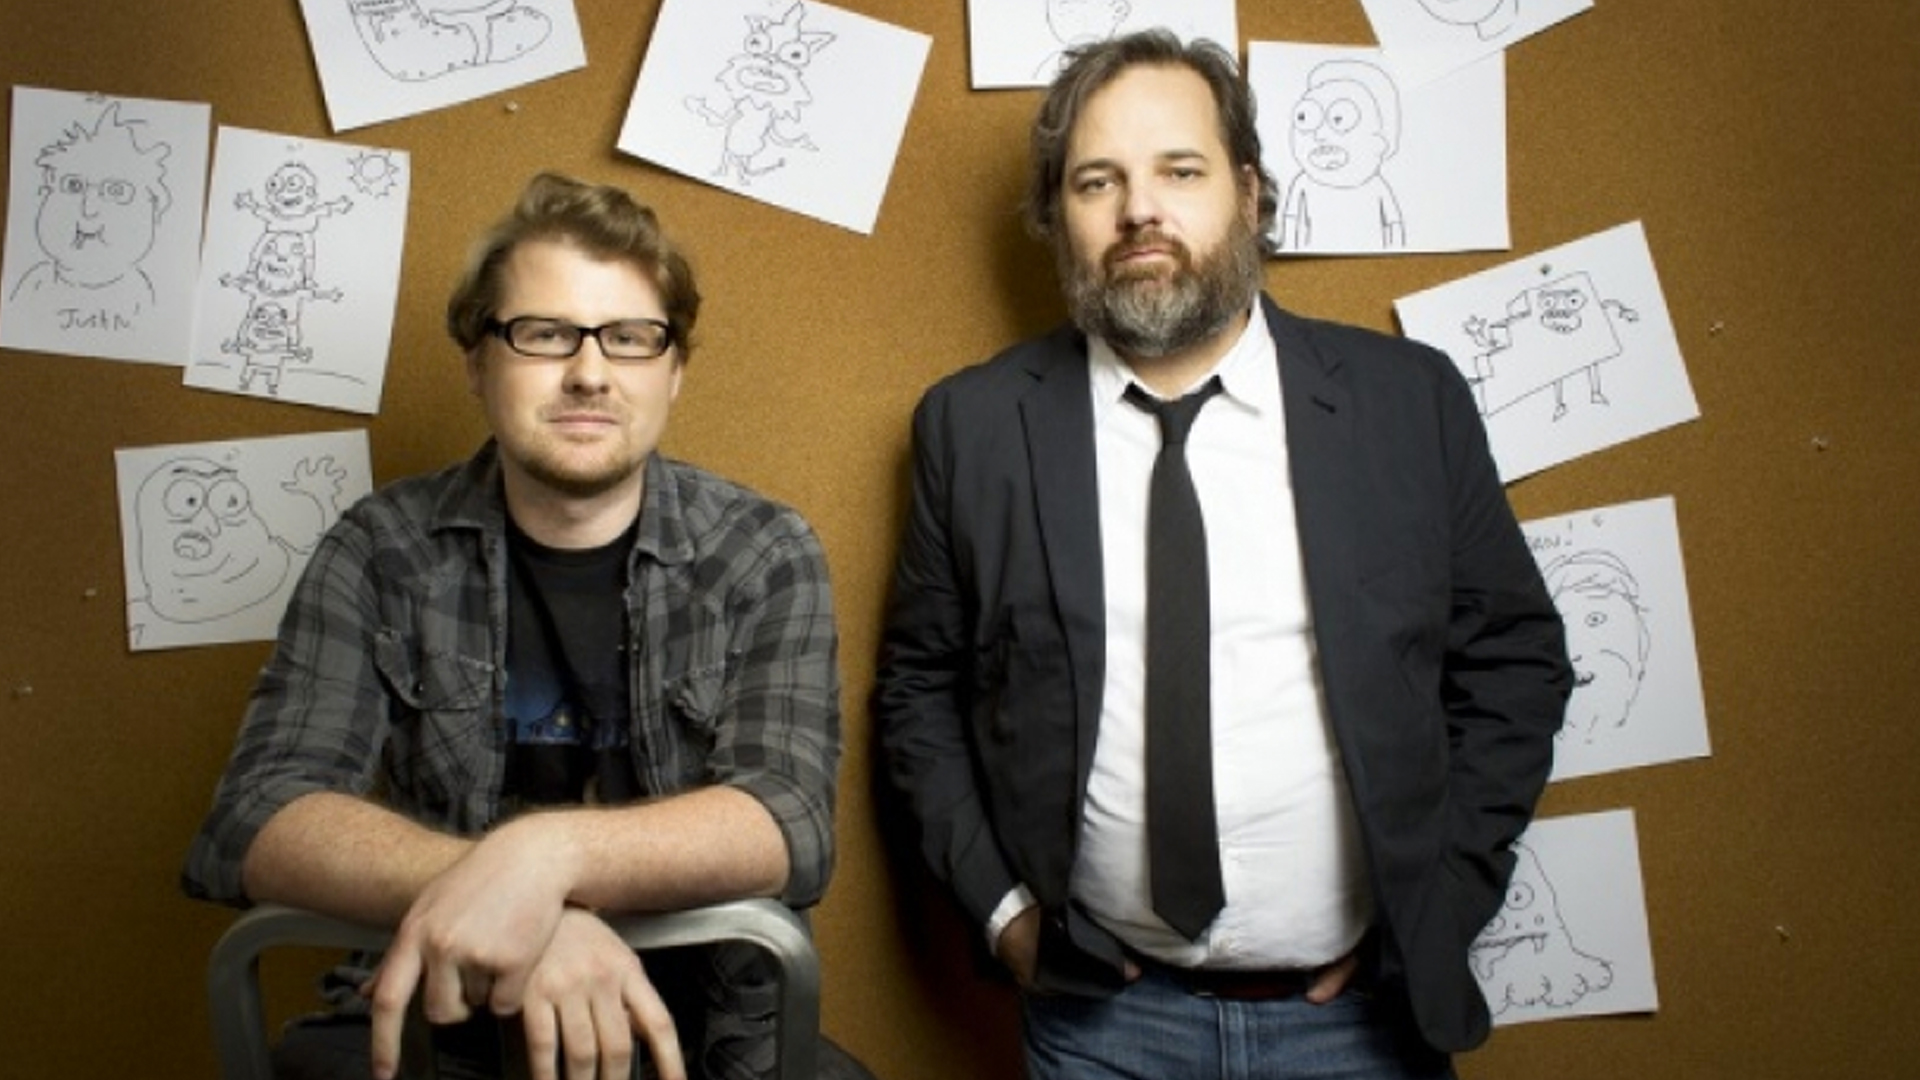 Rick and Morty Season 5 Plot Spoilers from Justin Roiland and Dan Harmon